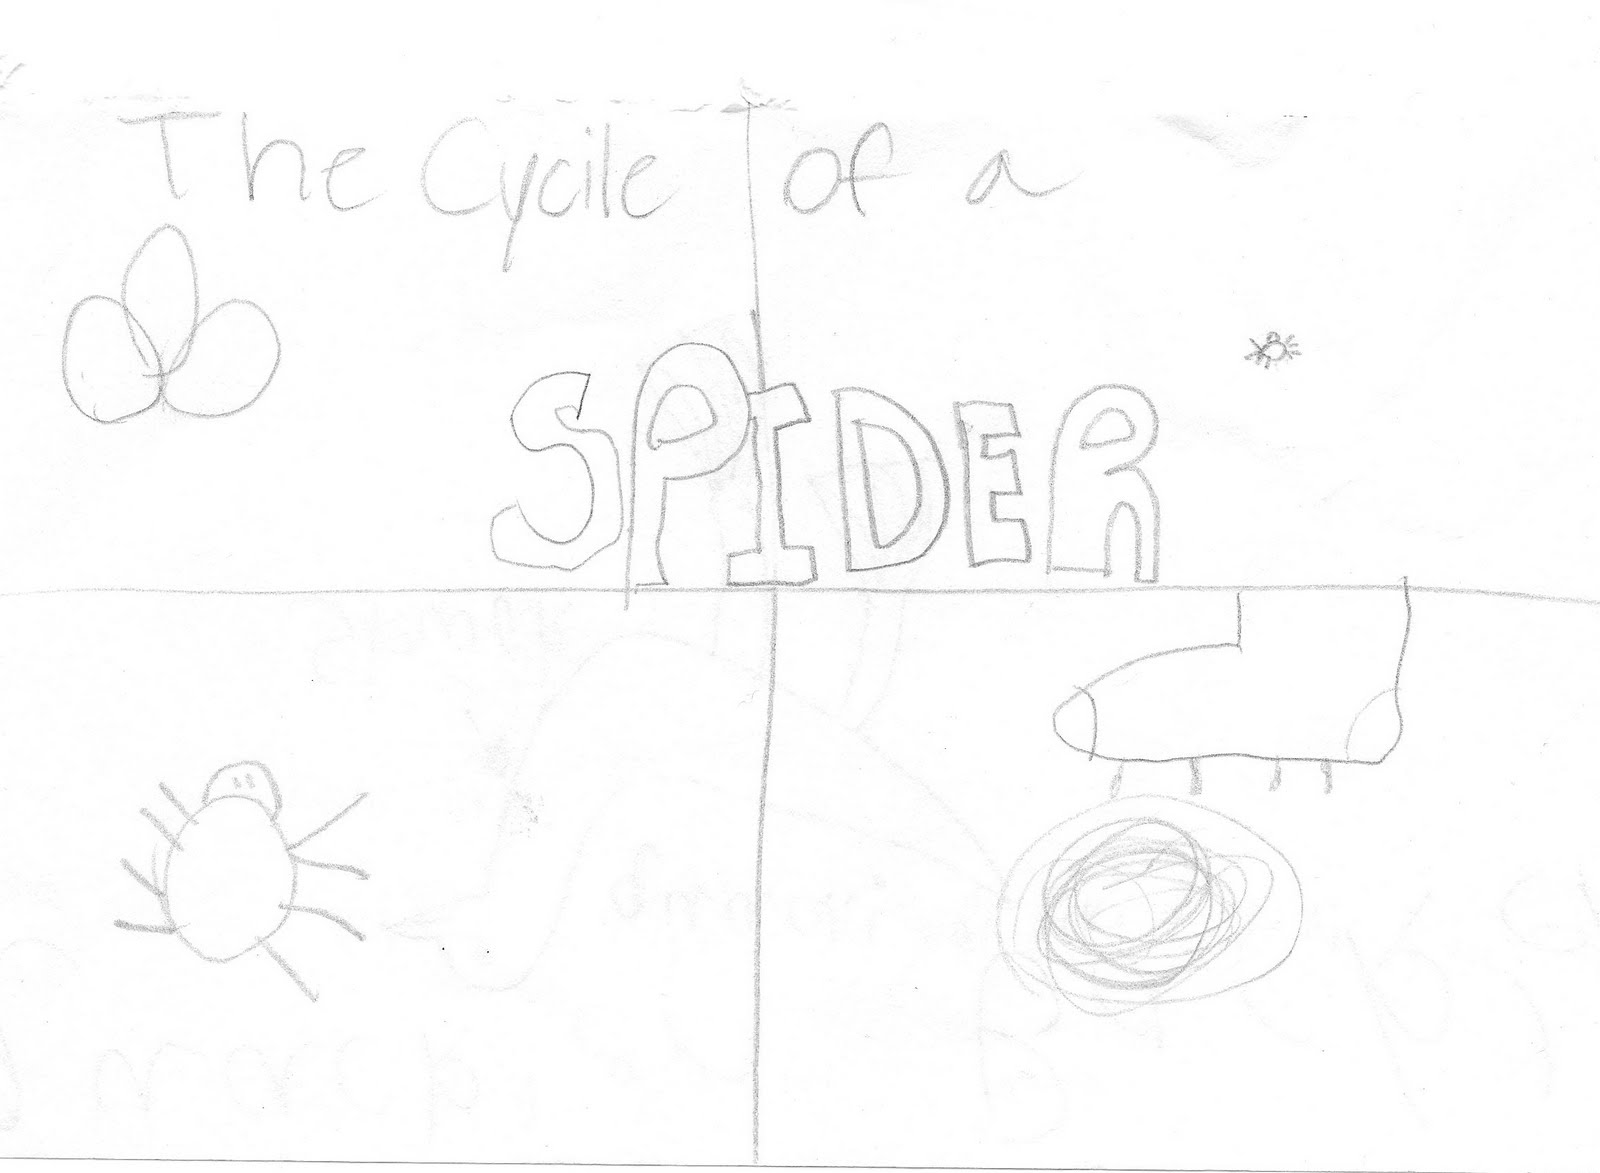 Controlling My Chaos: The Life Cycle of a Spider and Other